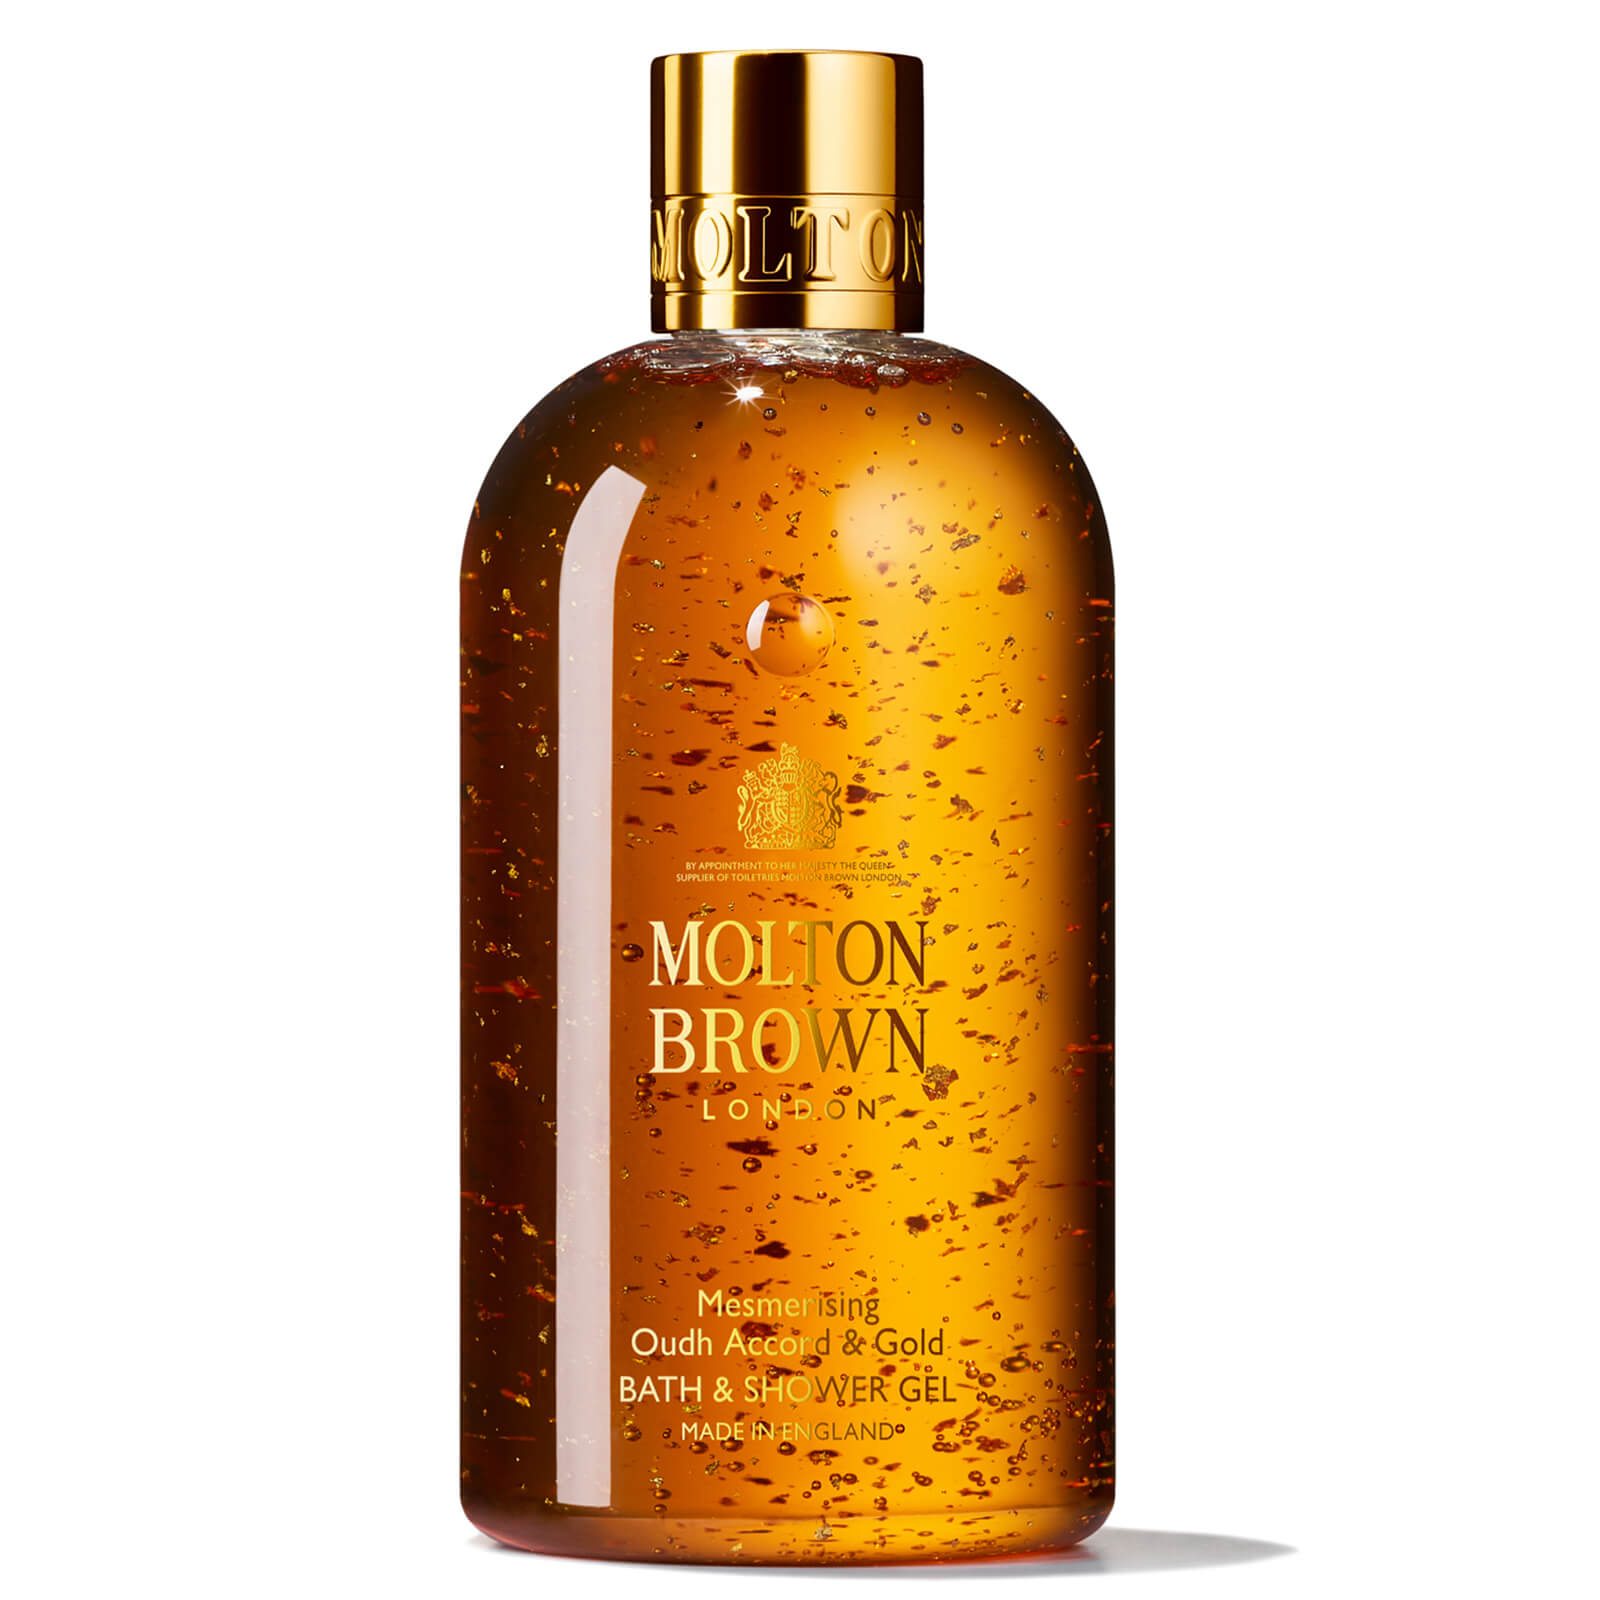 Molton Brown Oudh Accord and Gold Body Wash (300ml)